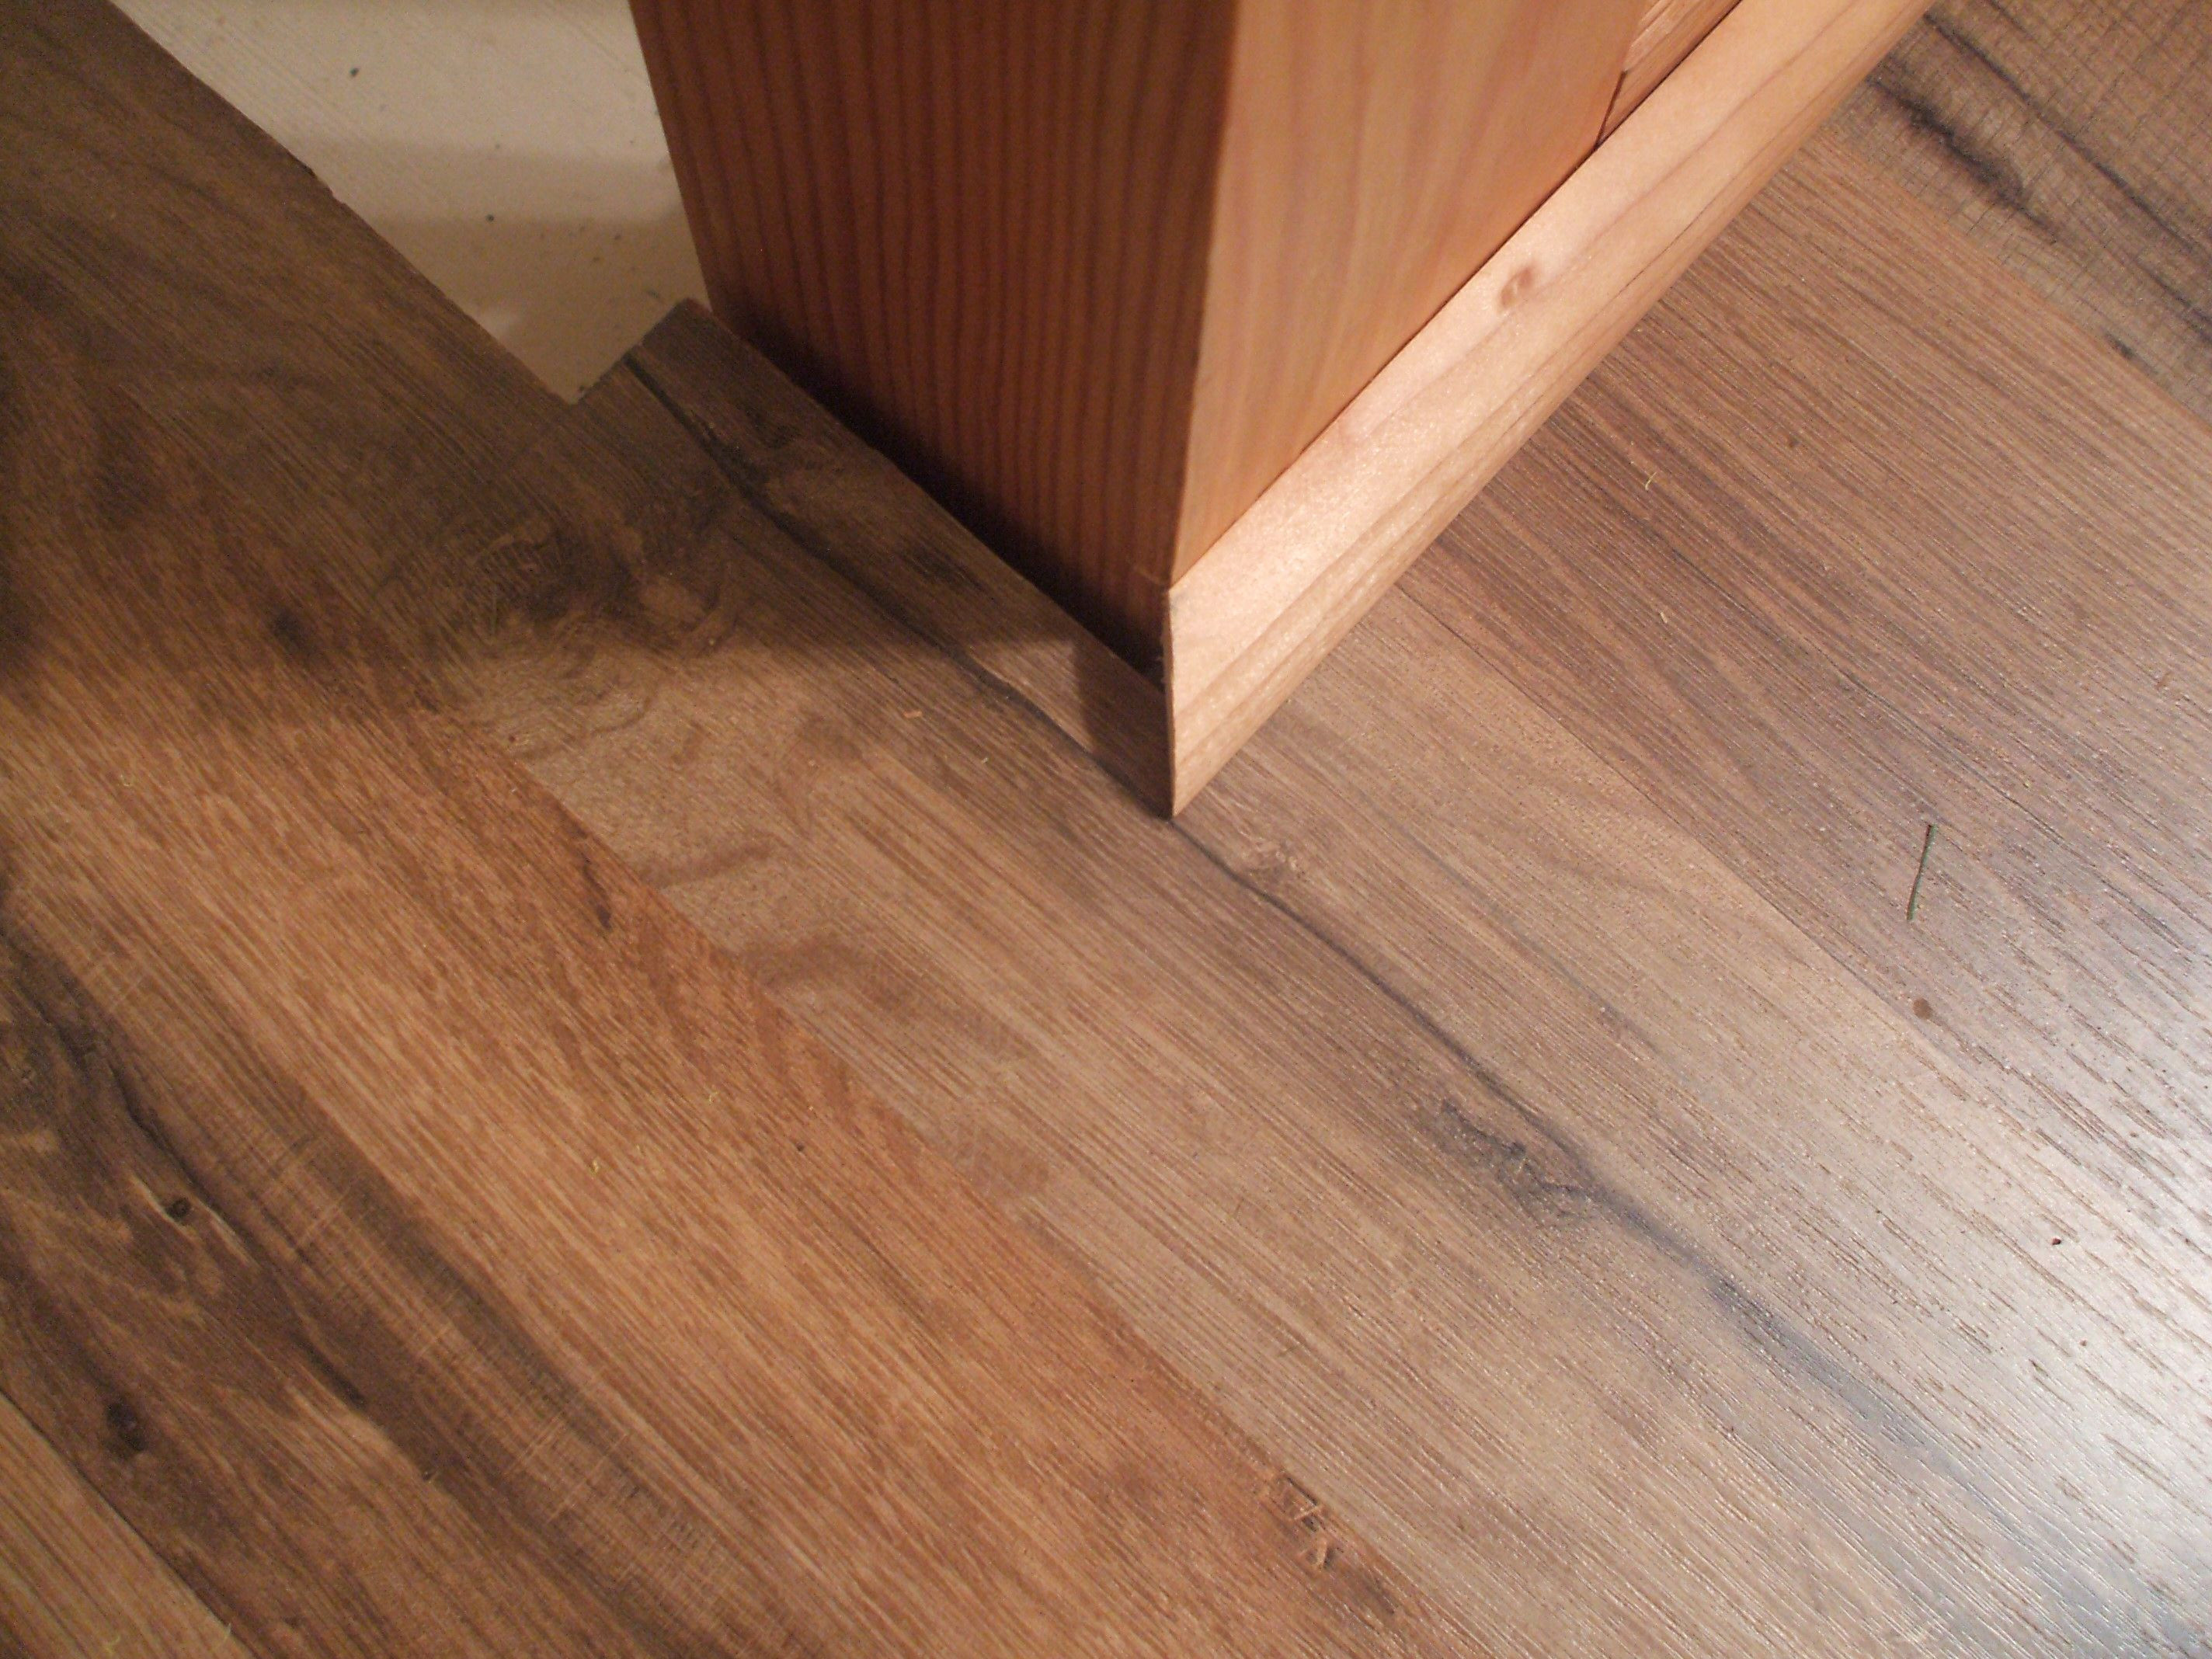 How to Reverse Hardwood Floor Direction Of How to Install Shoe Molding or Quarter Round Molding with Set First Piece In Place 56a49e523df78cf772834b40 Jpg